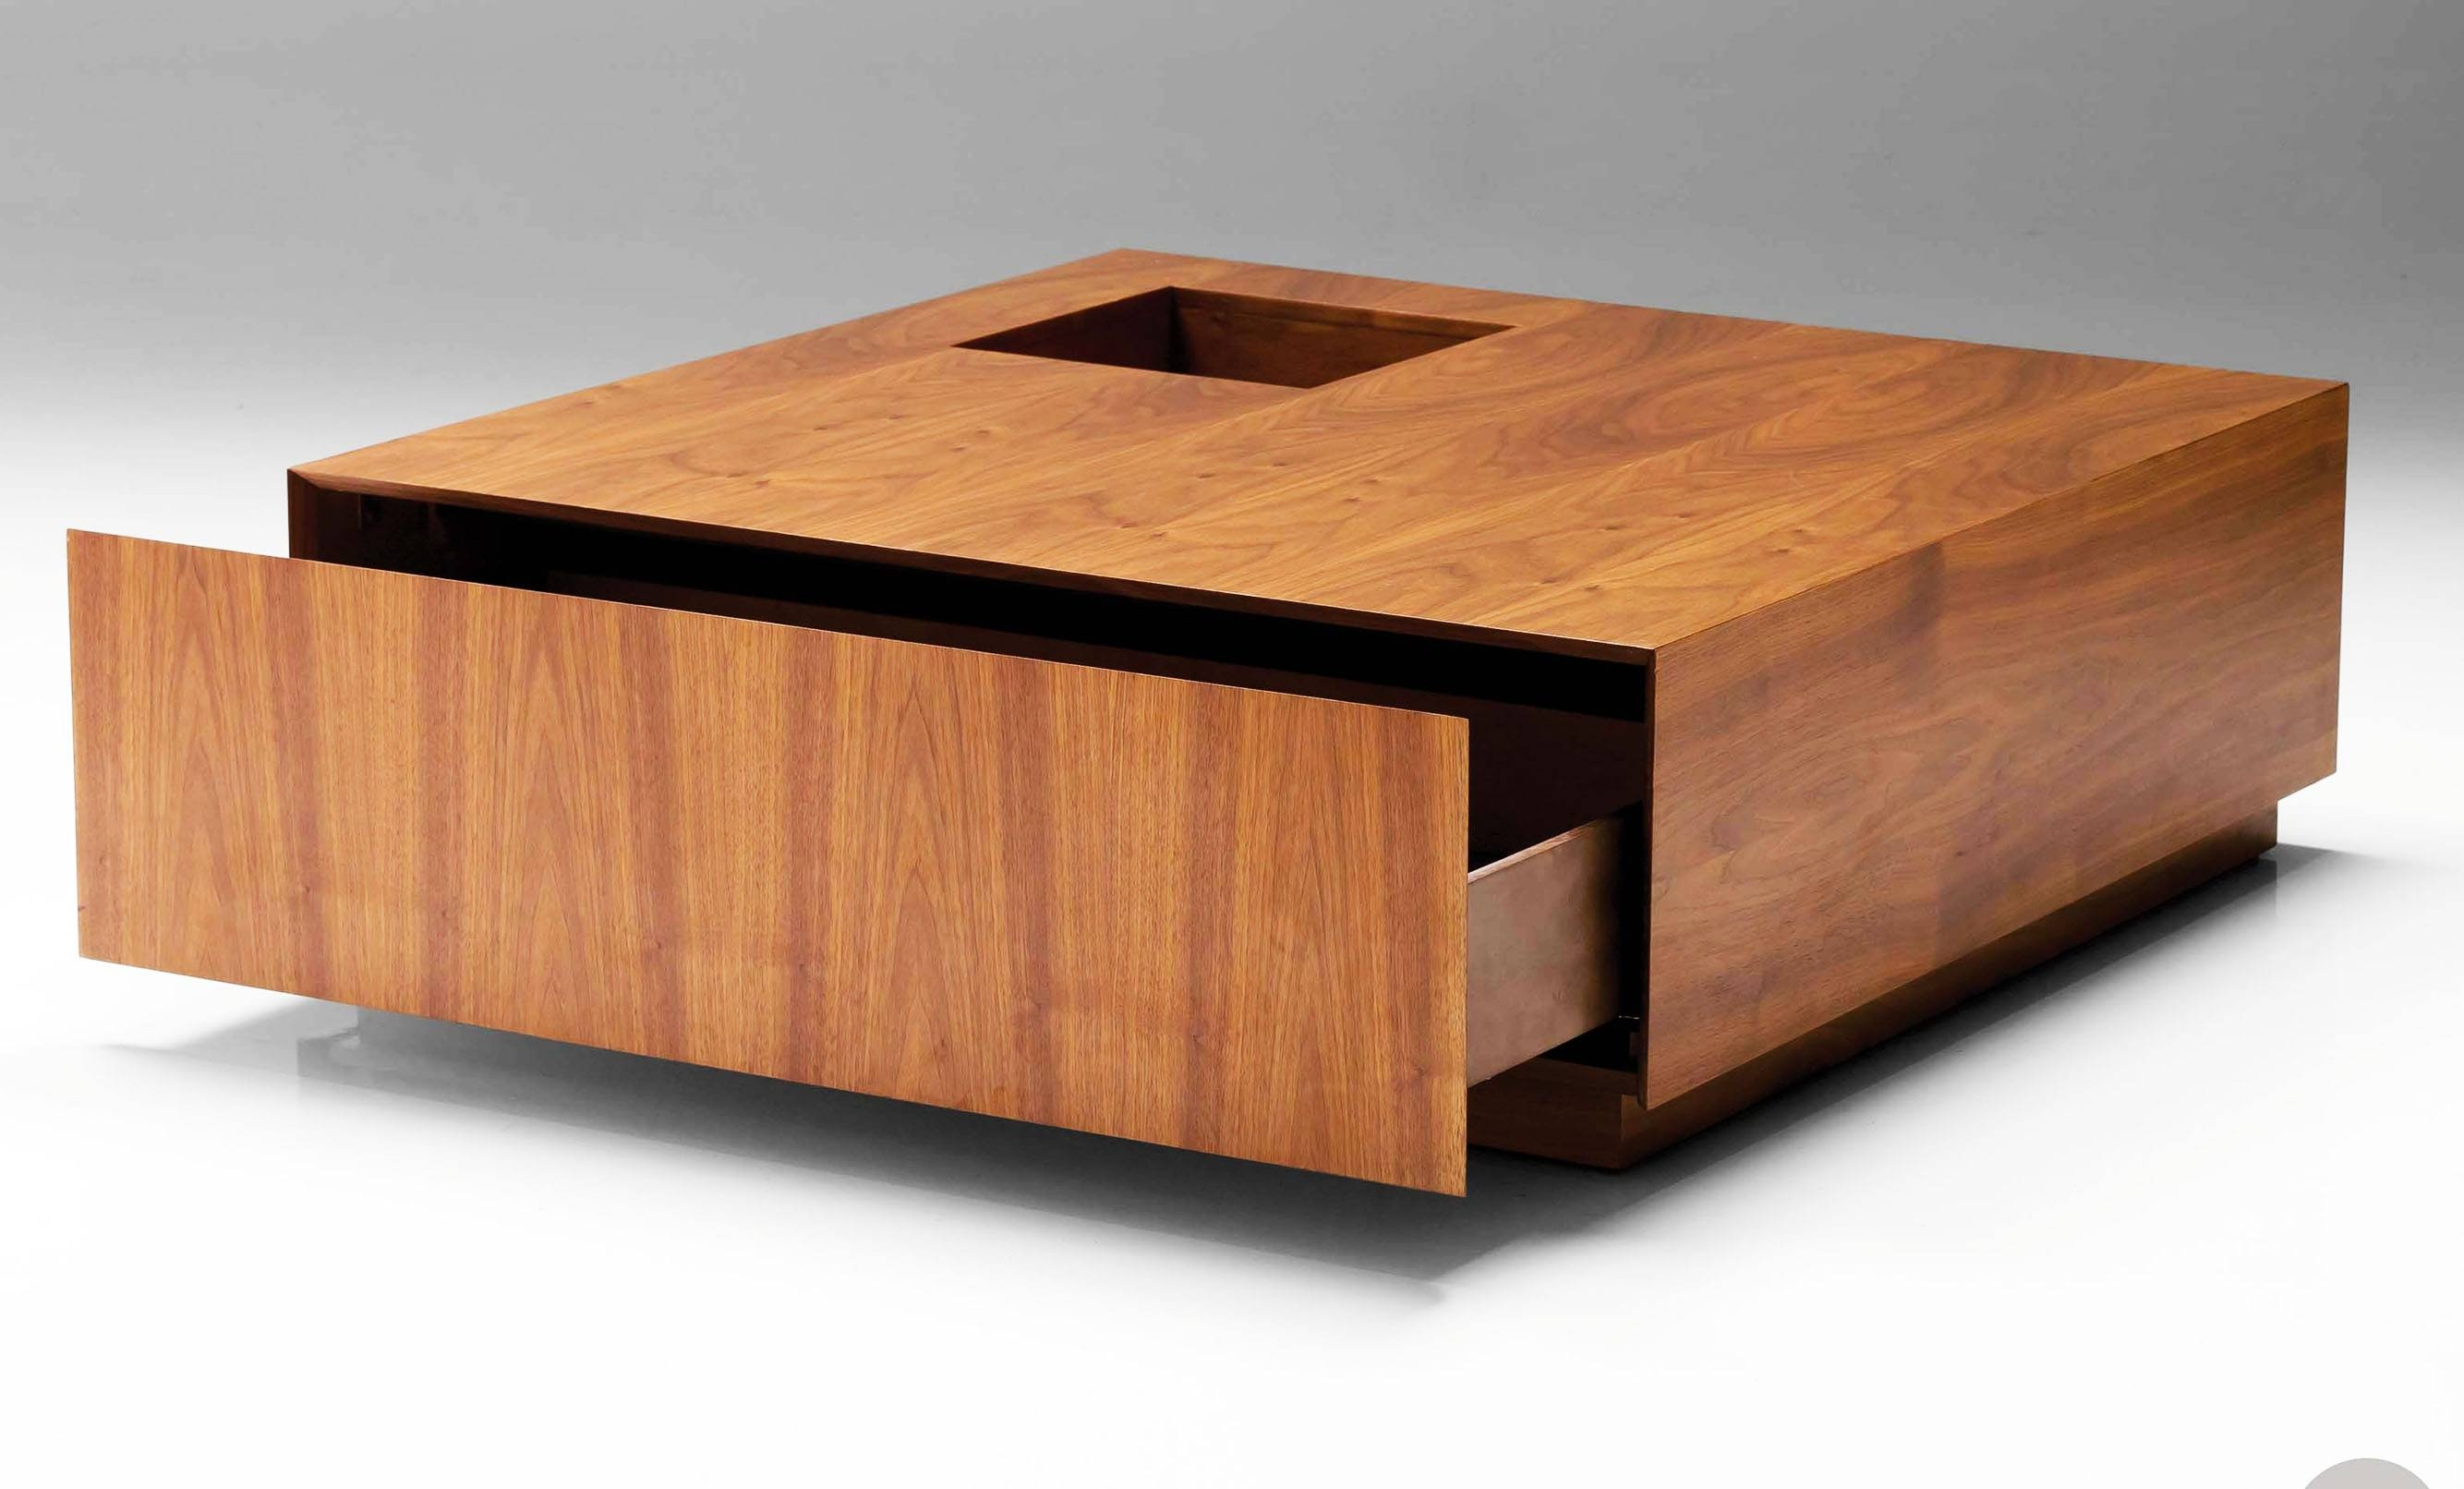 Large Square Coffee Tables | Homefurniture with regard to Square Low Coffee Tables (Image 8 of 20)